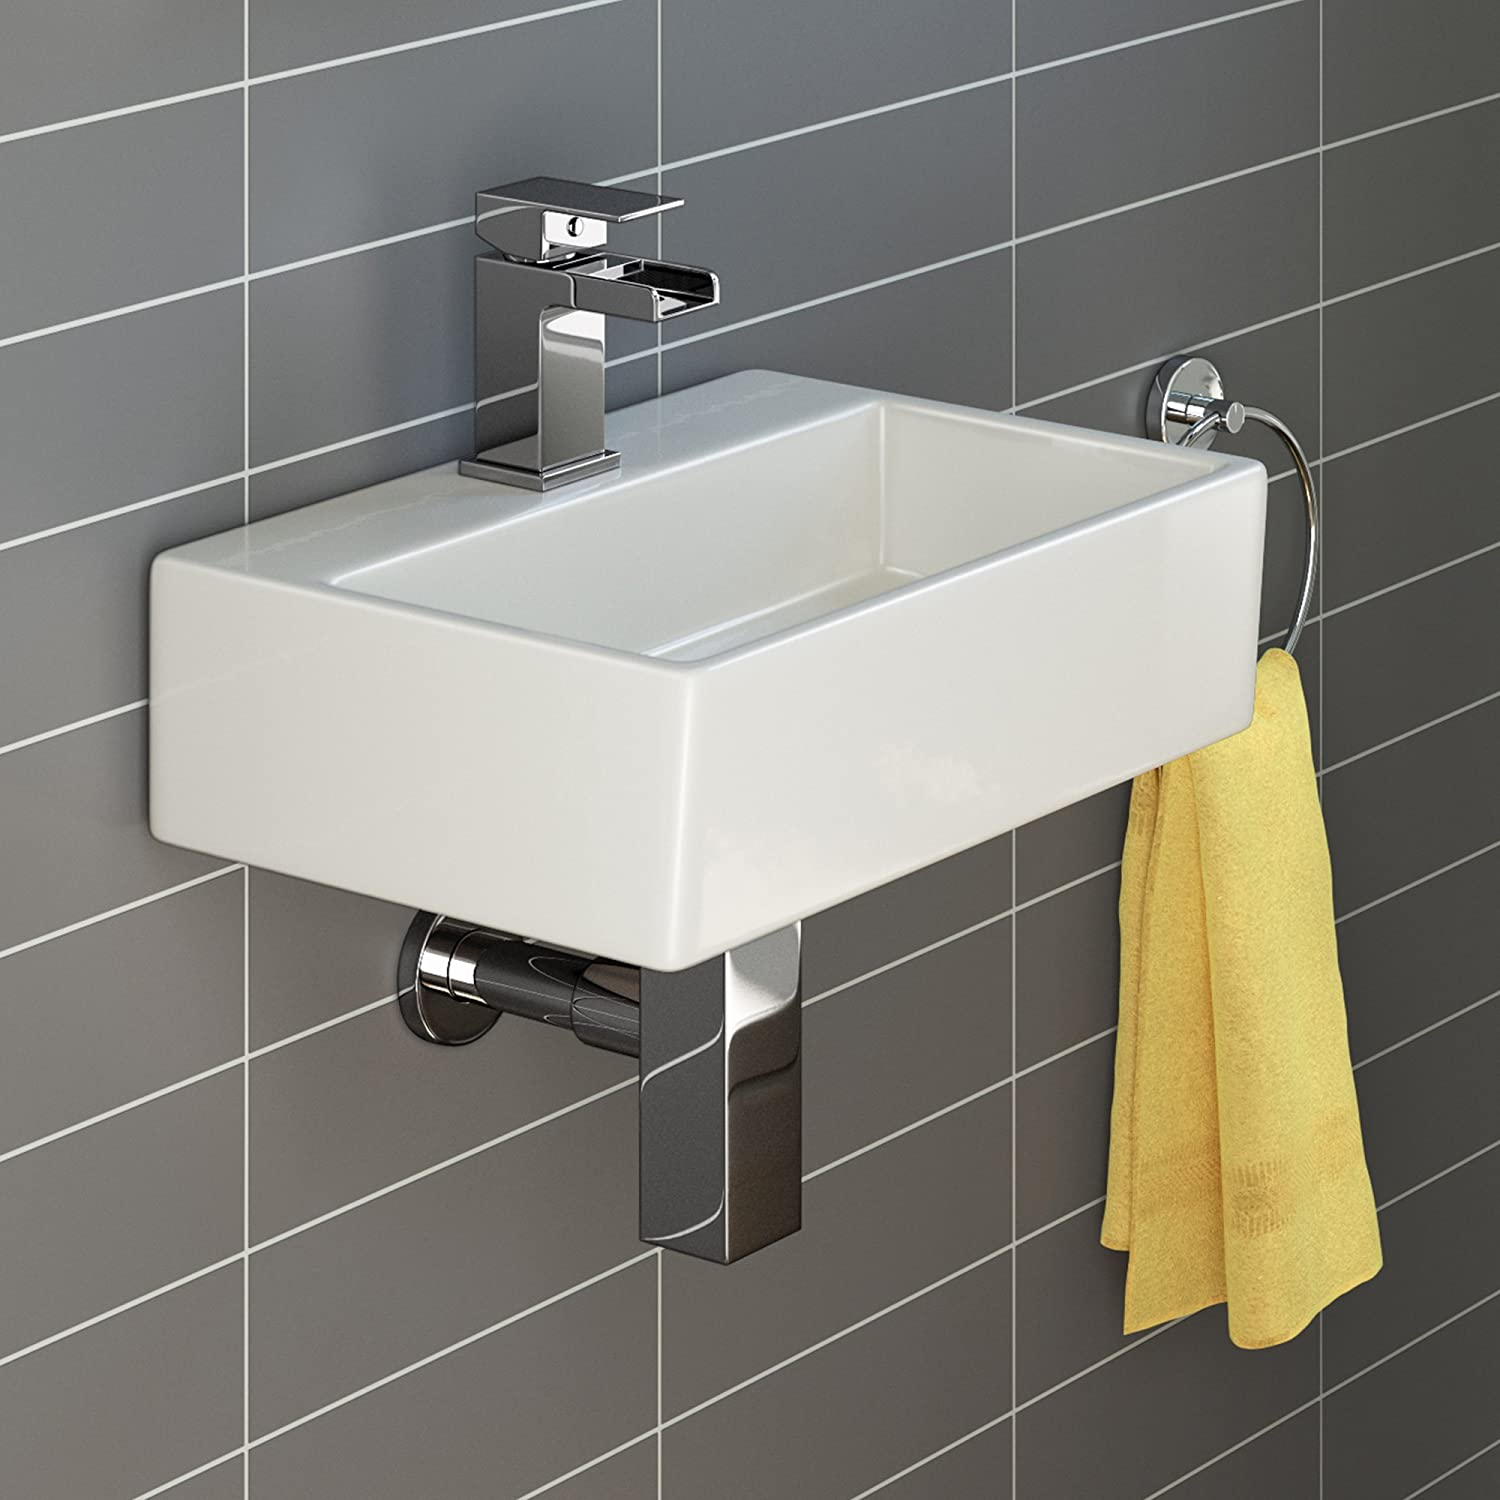 iBathUK | Modern Square Ceramic Small Cloakroom Basin Wall Hung Bathroom Sink CA1002